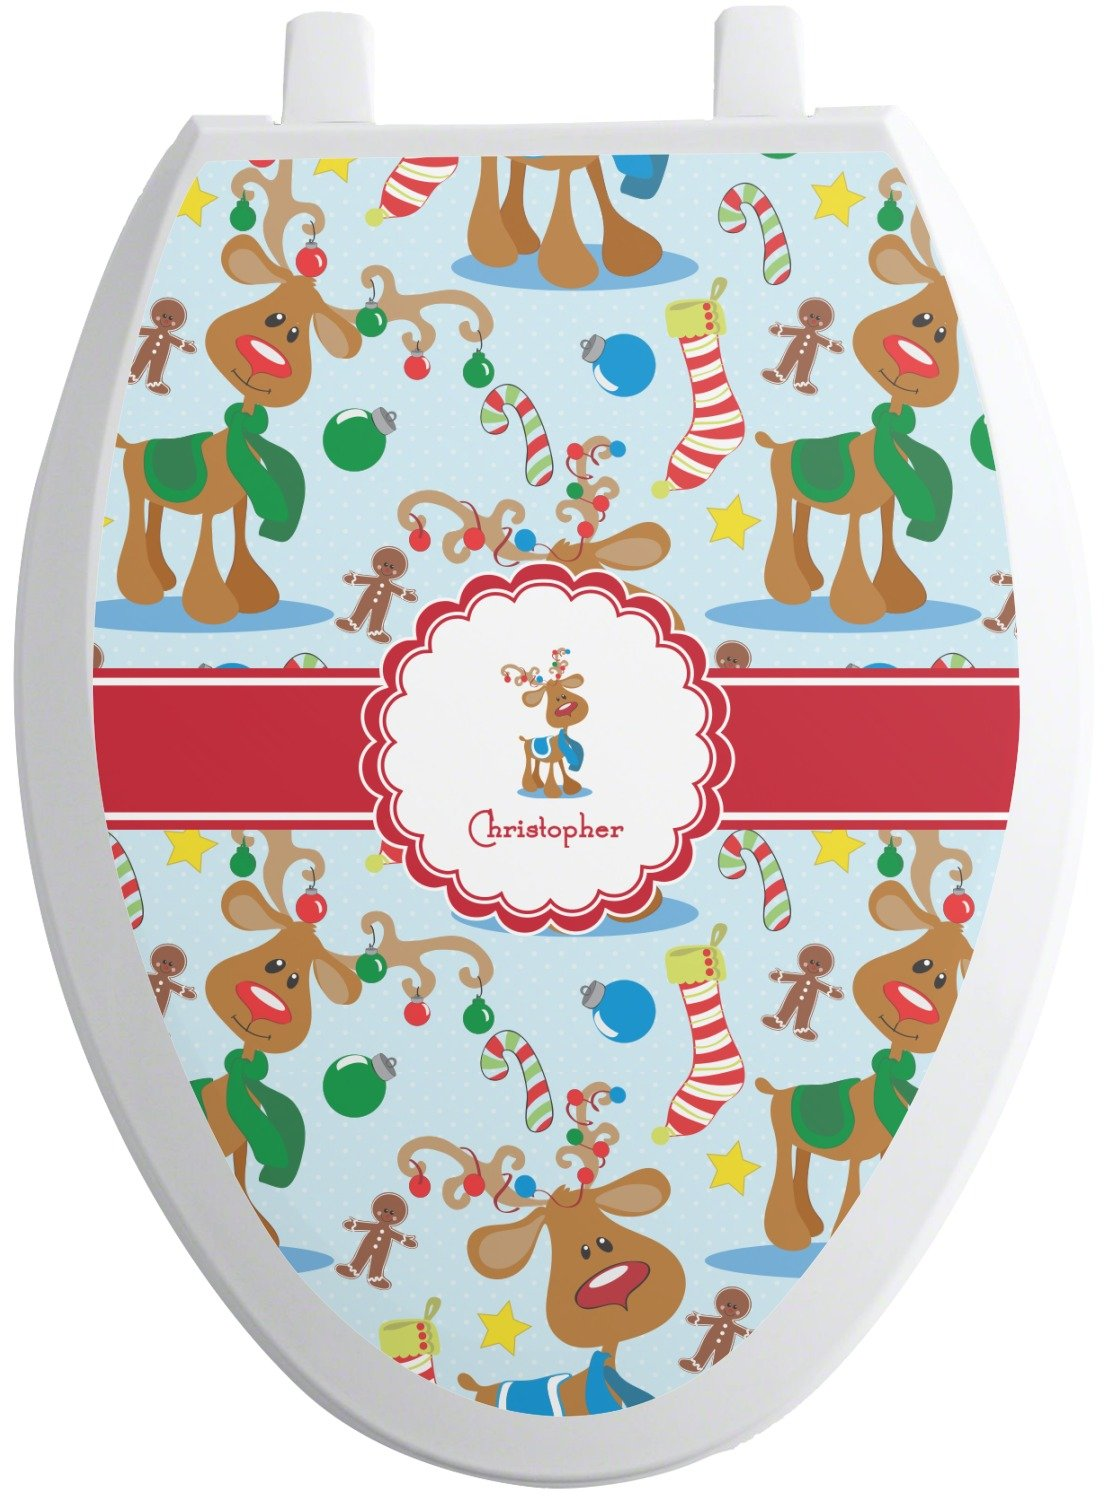 Surprising Rnk Shops Reindeer Toilet Seat Decal Elongated Pdpeps Interior Chair Design Pdpepsorg